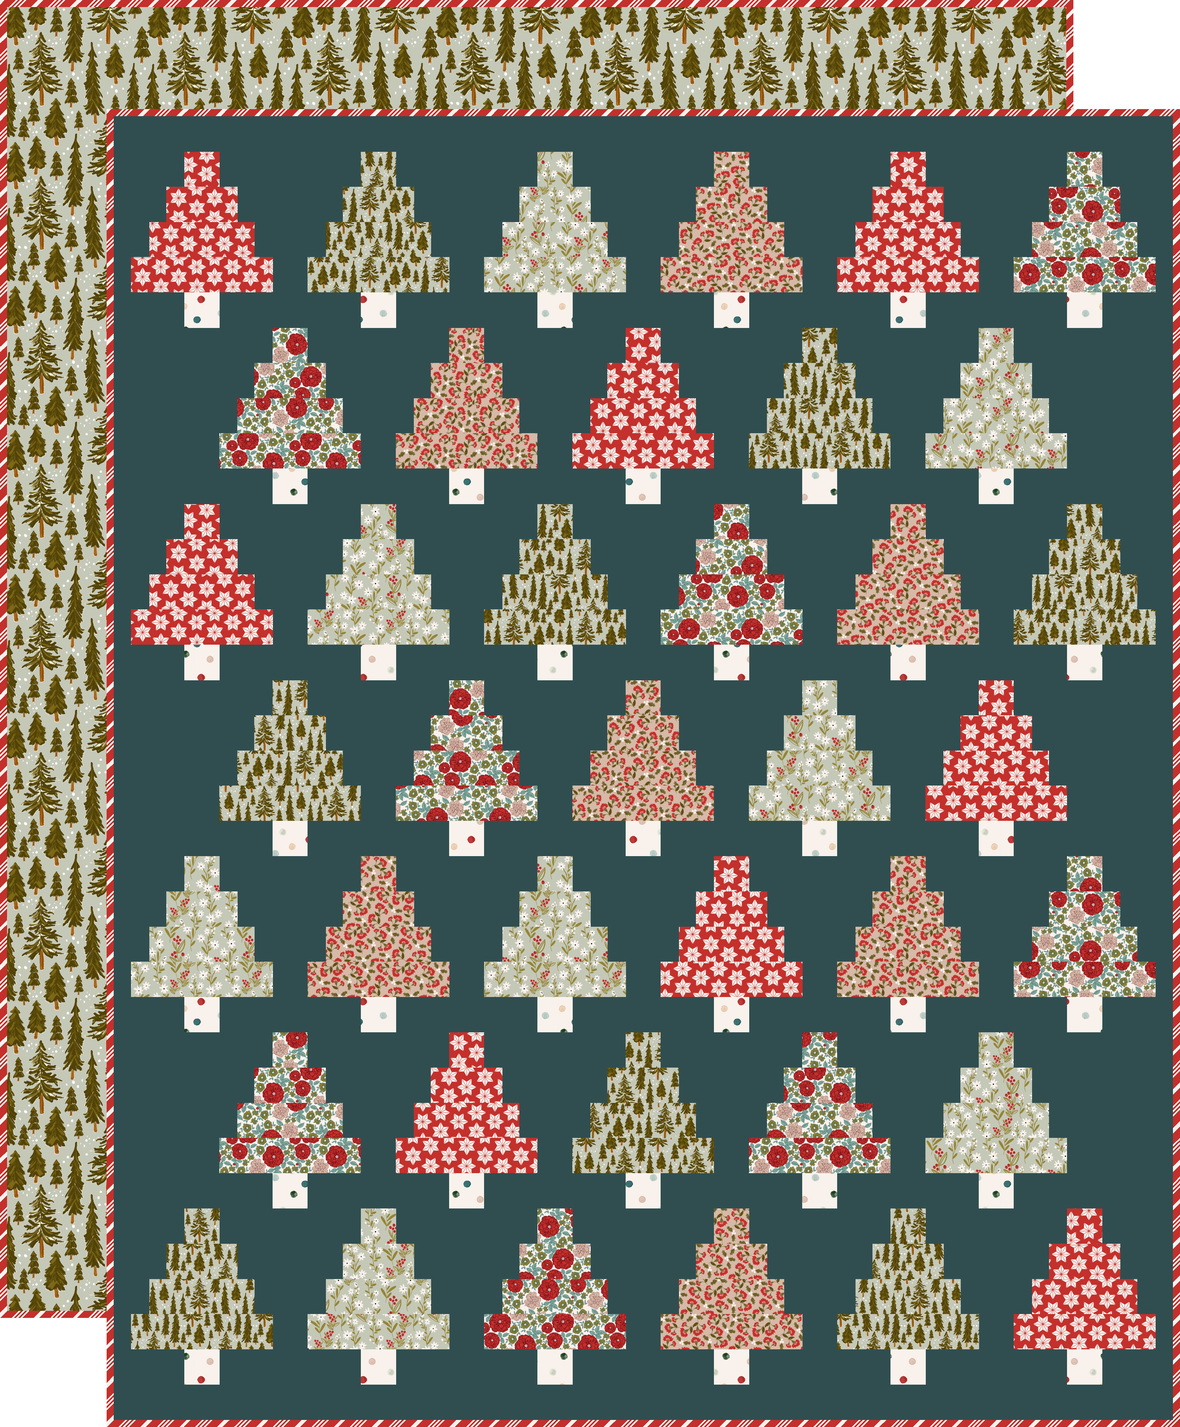 Quilty Trees with backing